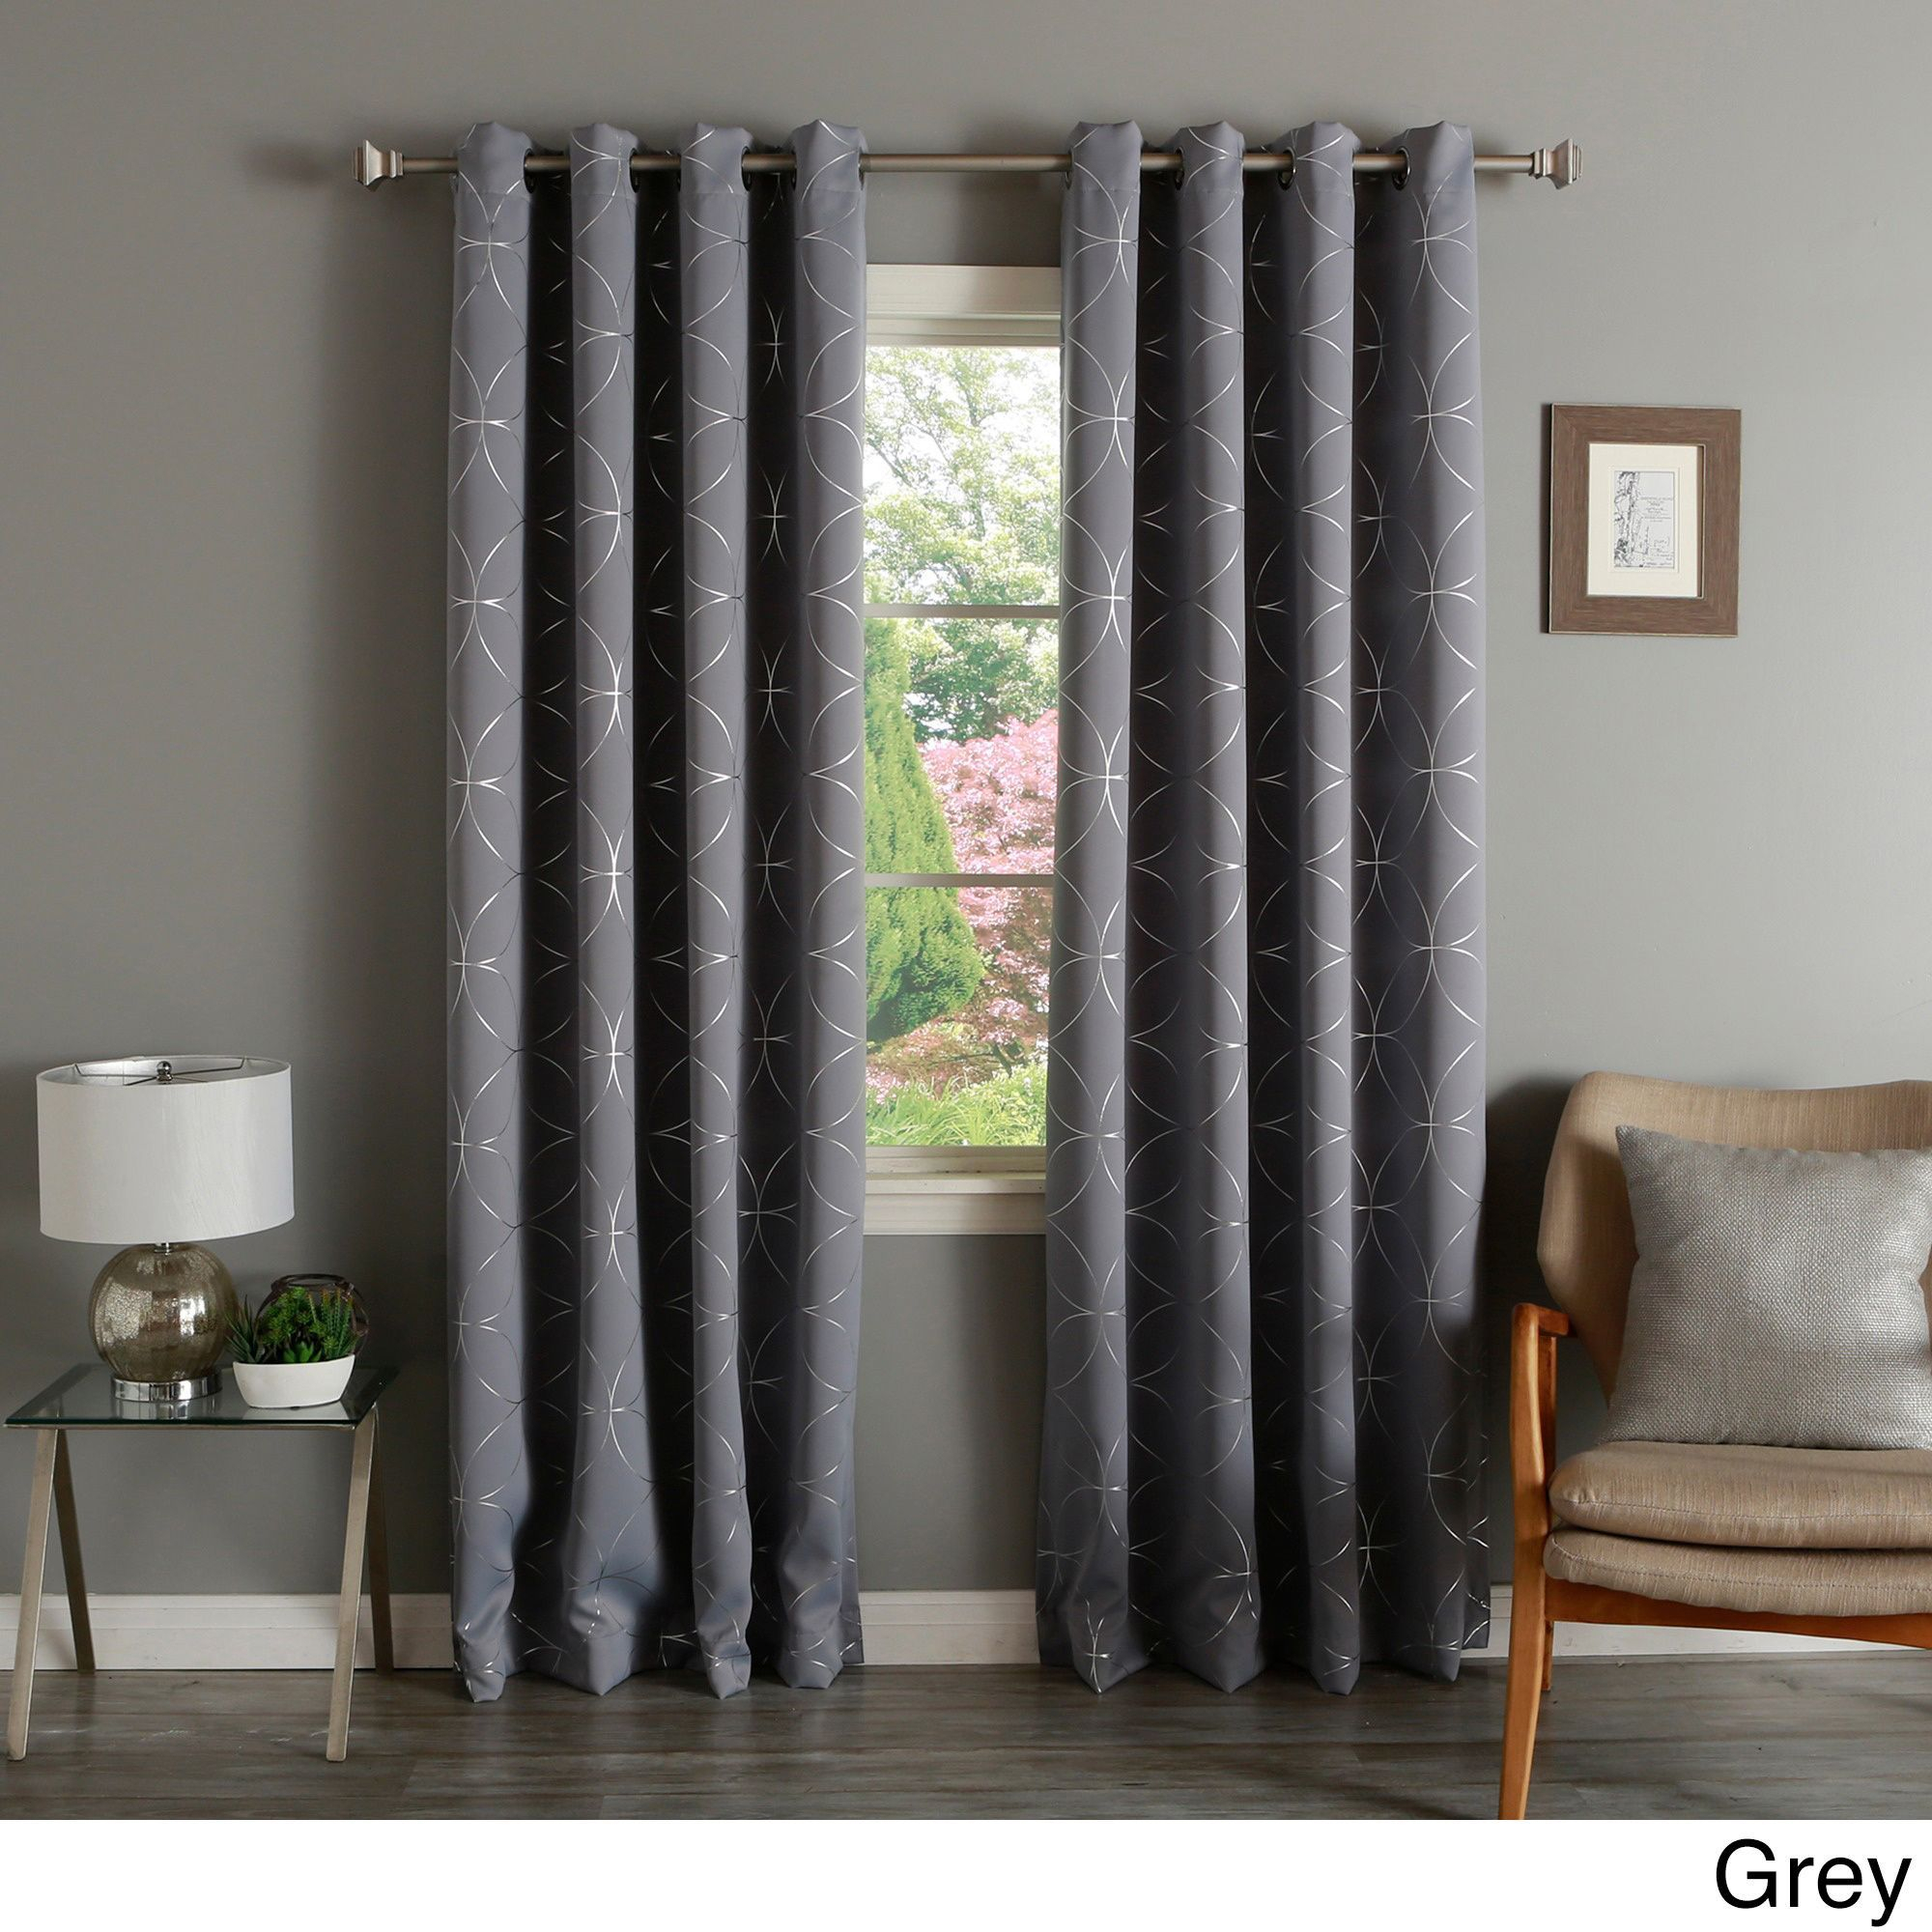 Aurora Home Linked Circle Foil Printed Blackout Curtain Intended For Whitman Curtain Panel Pairs (View 17 of 30)